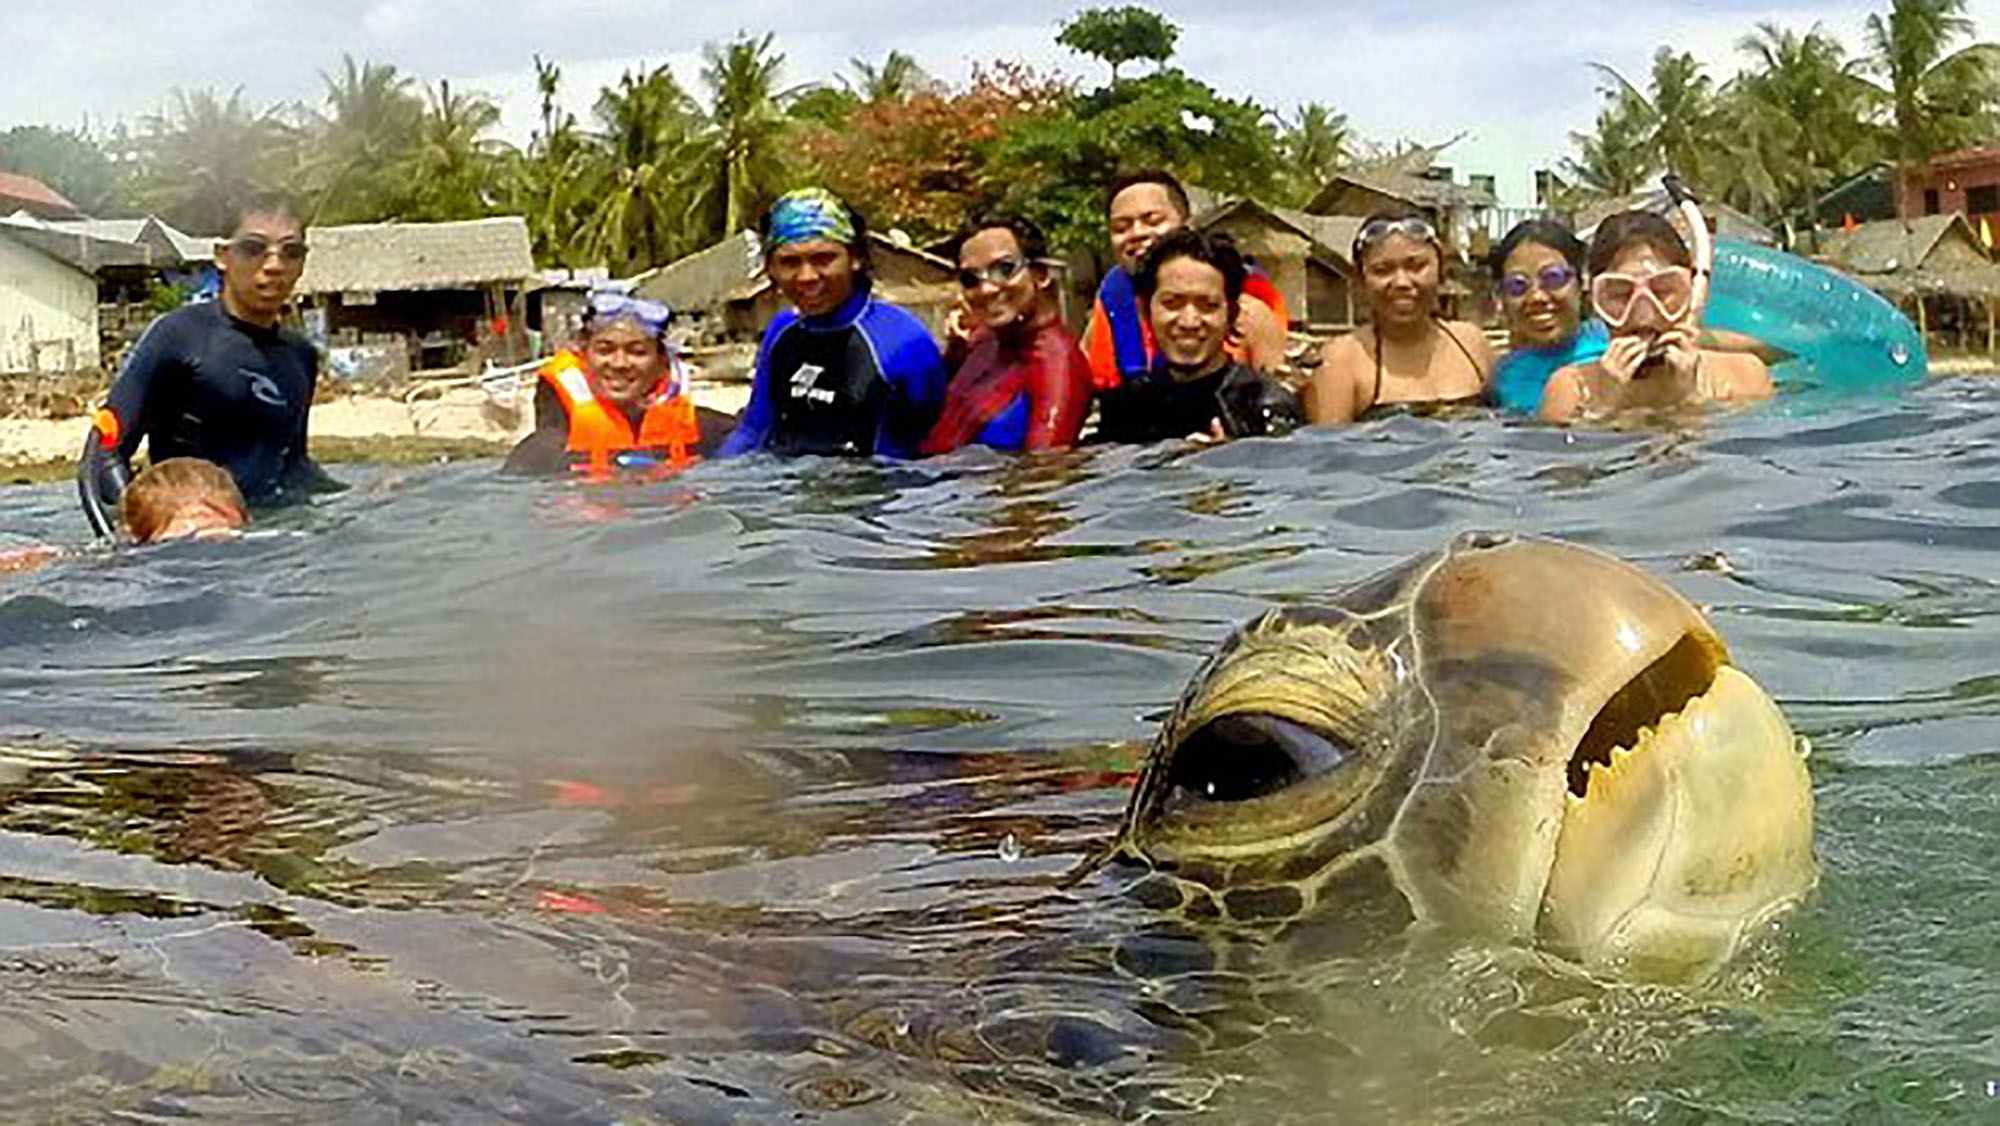 You have to see this sea turtle photo-bombing tourists to believe it!